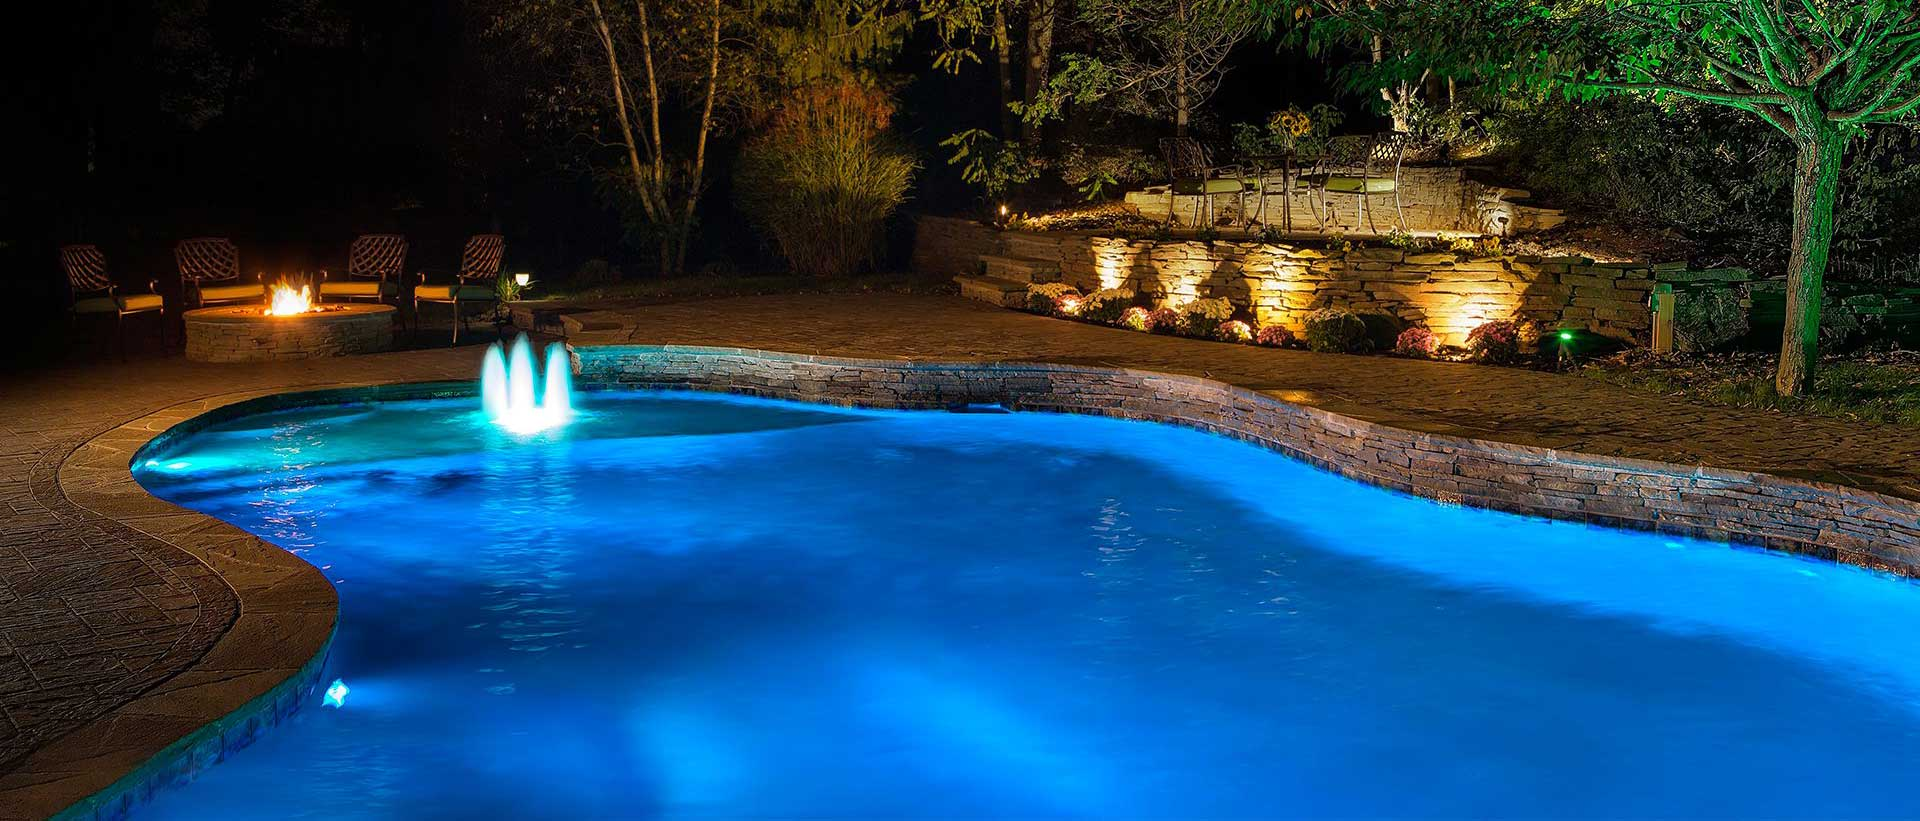 Packman's Pools - spa and swimming pool contractor